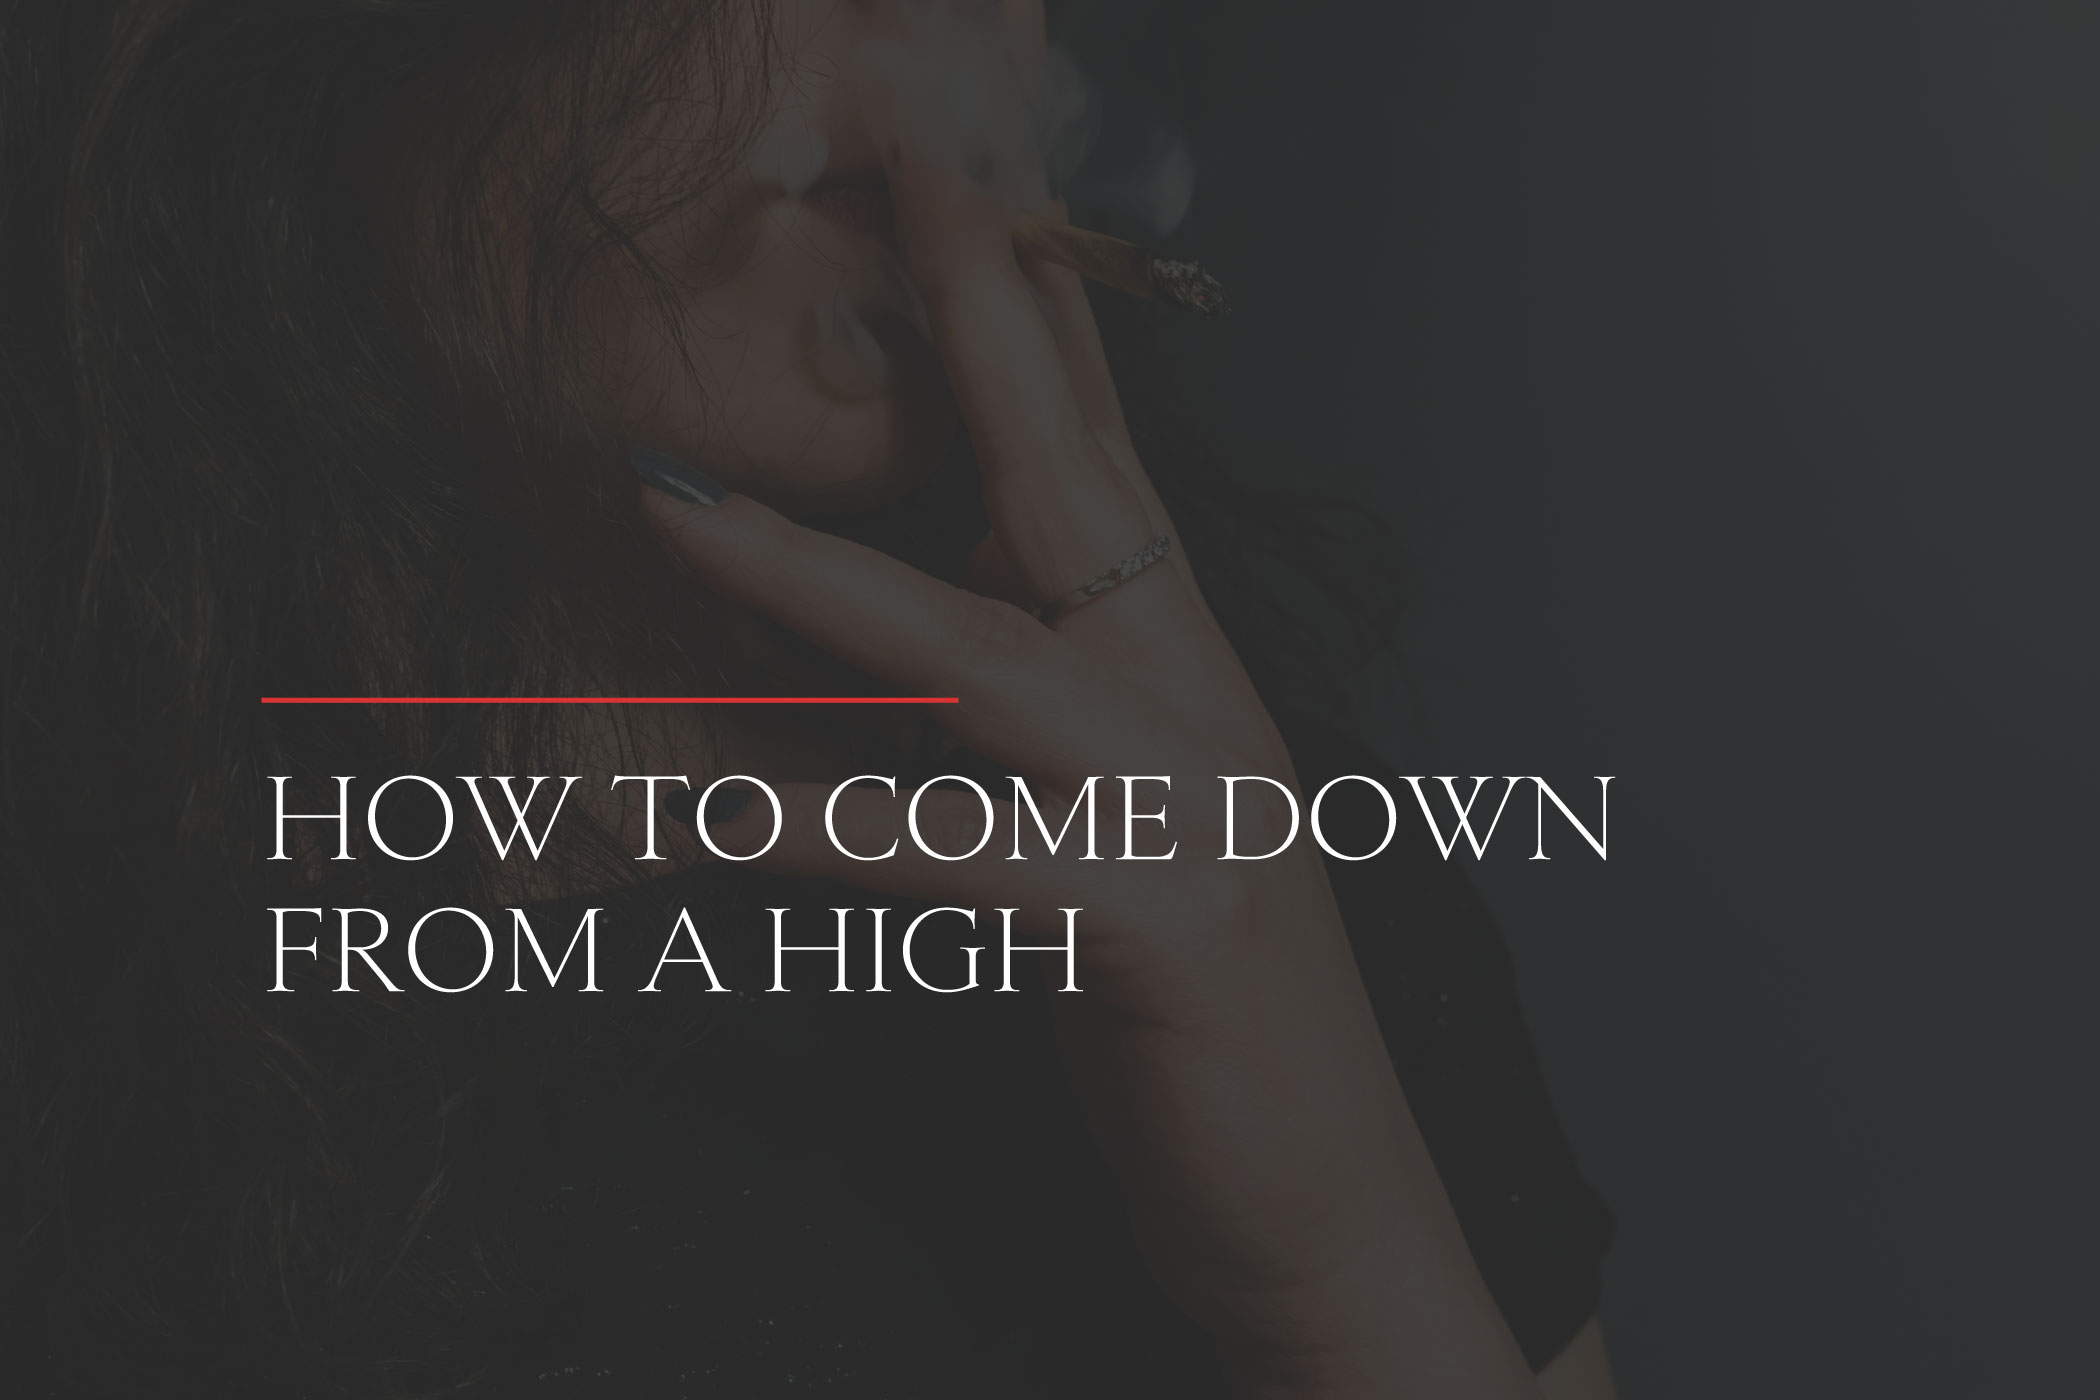 How to Come Down from a High